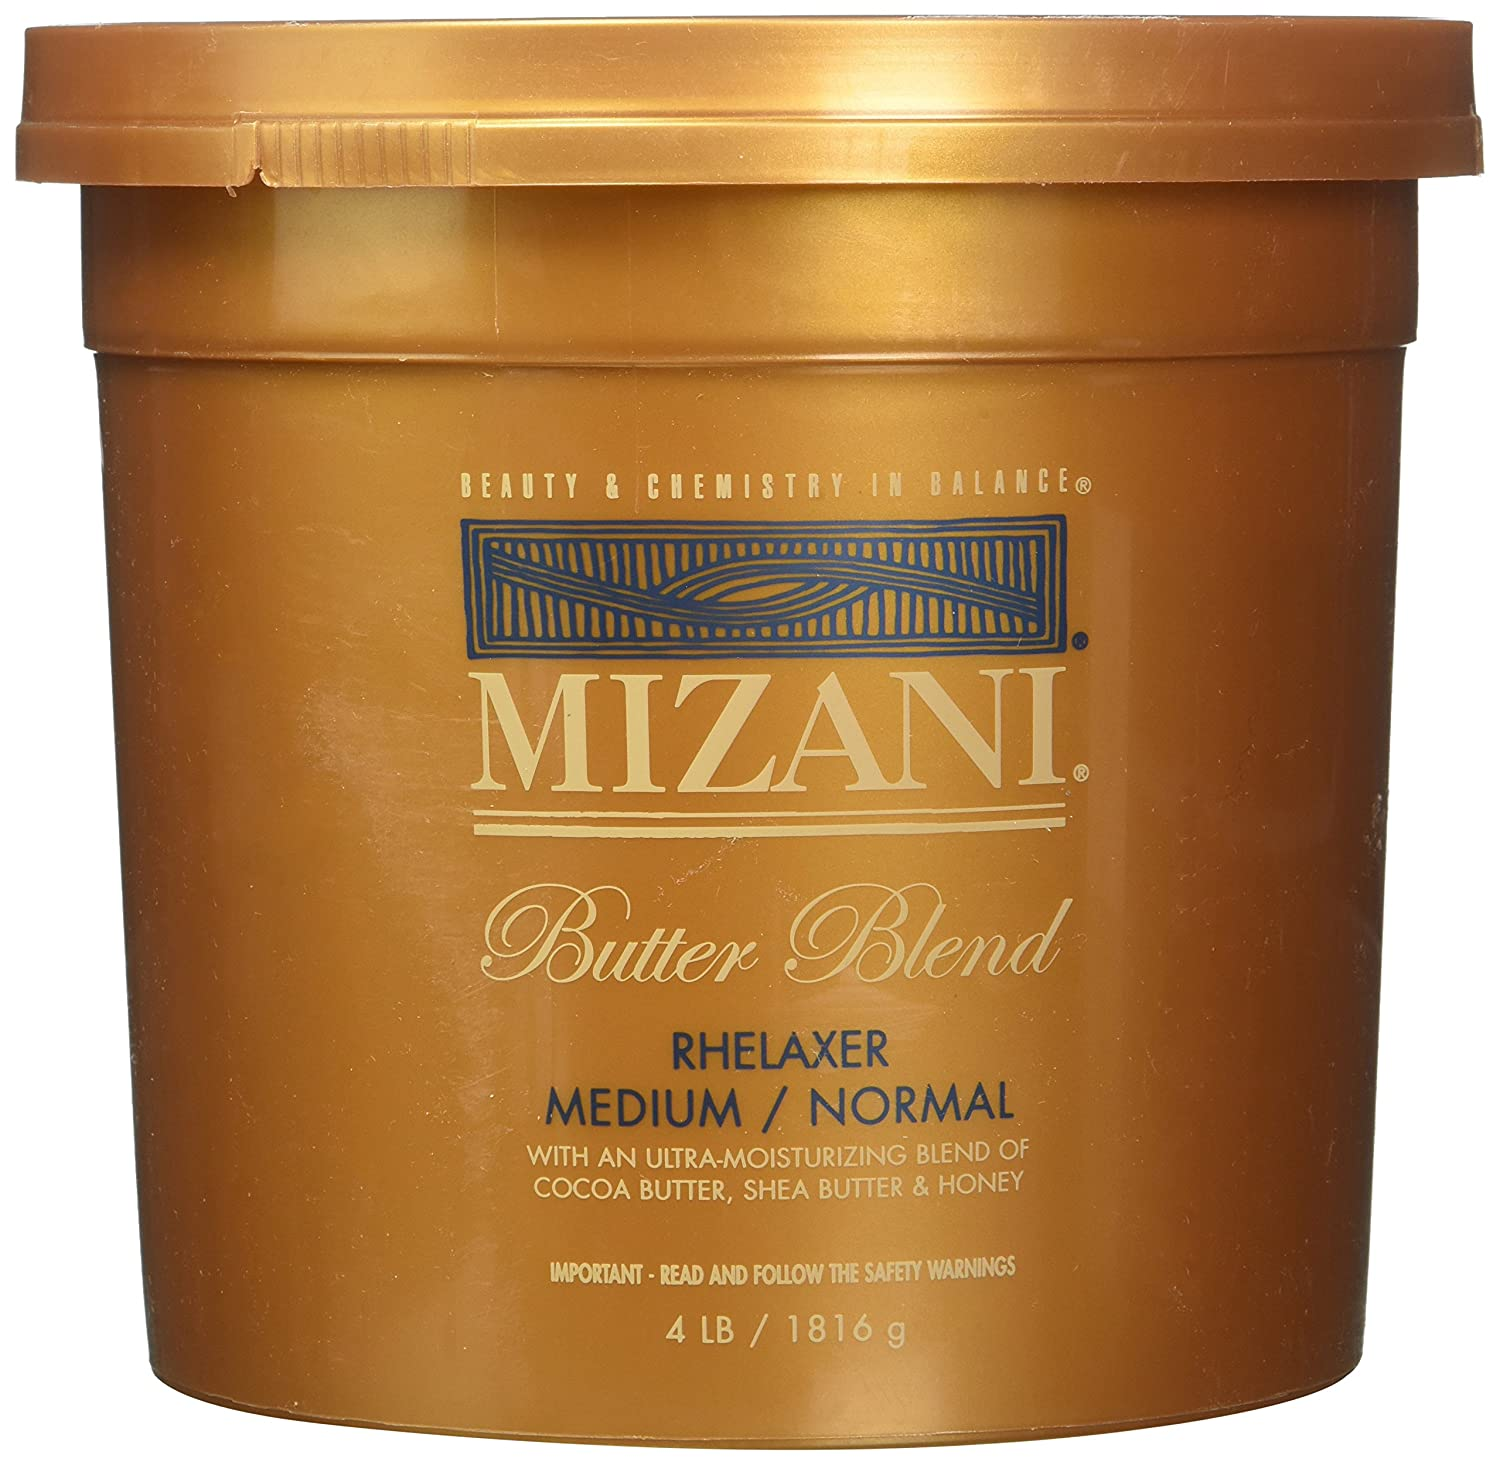 Mizani Butter Blend Relaxer Normal, réduction modérée maximale Curl £ 4